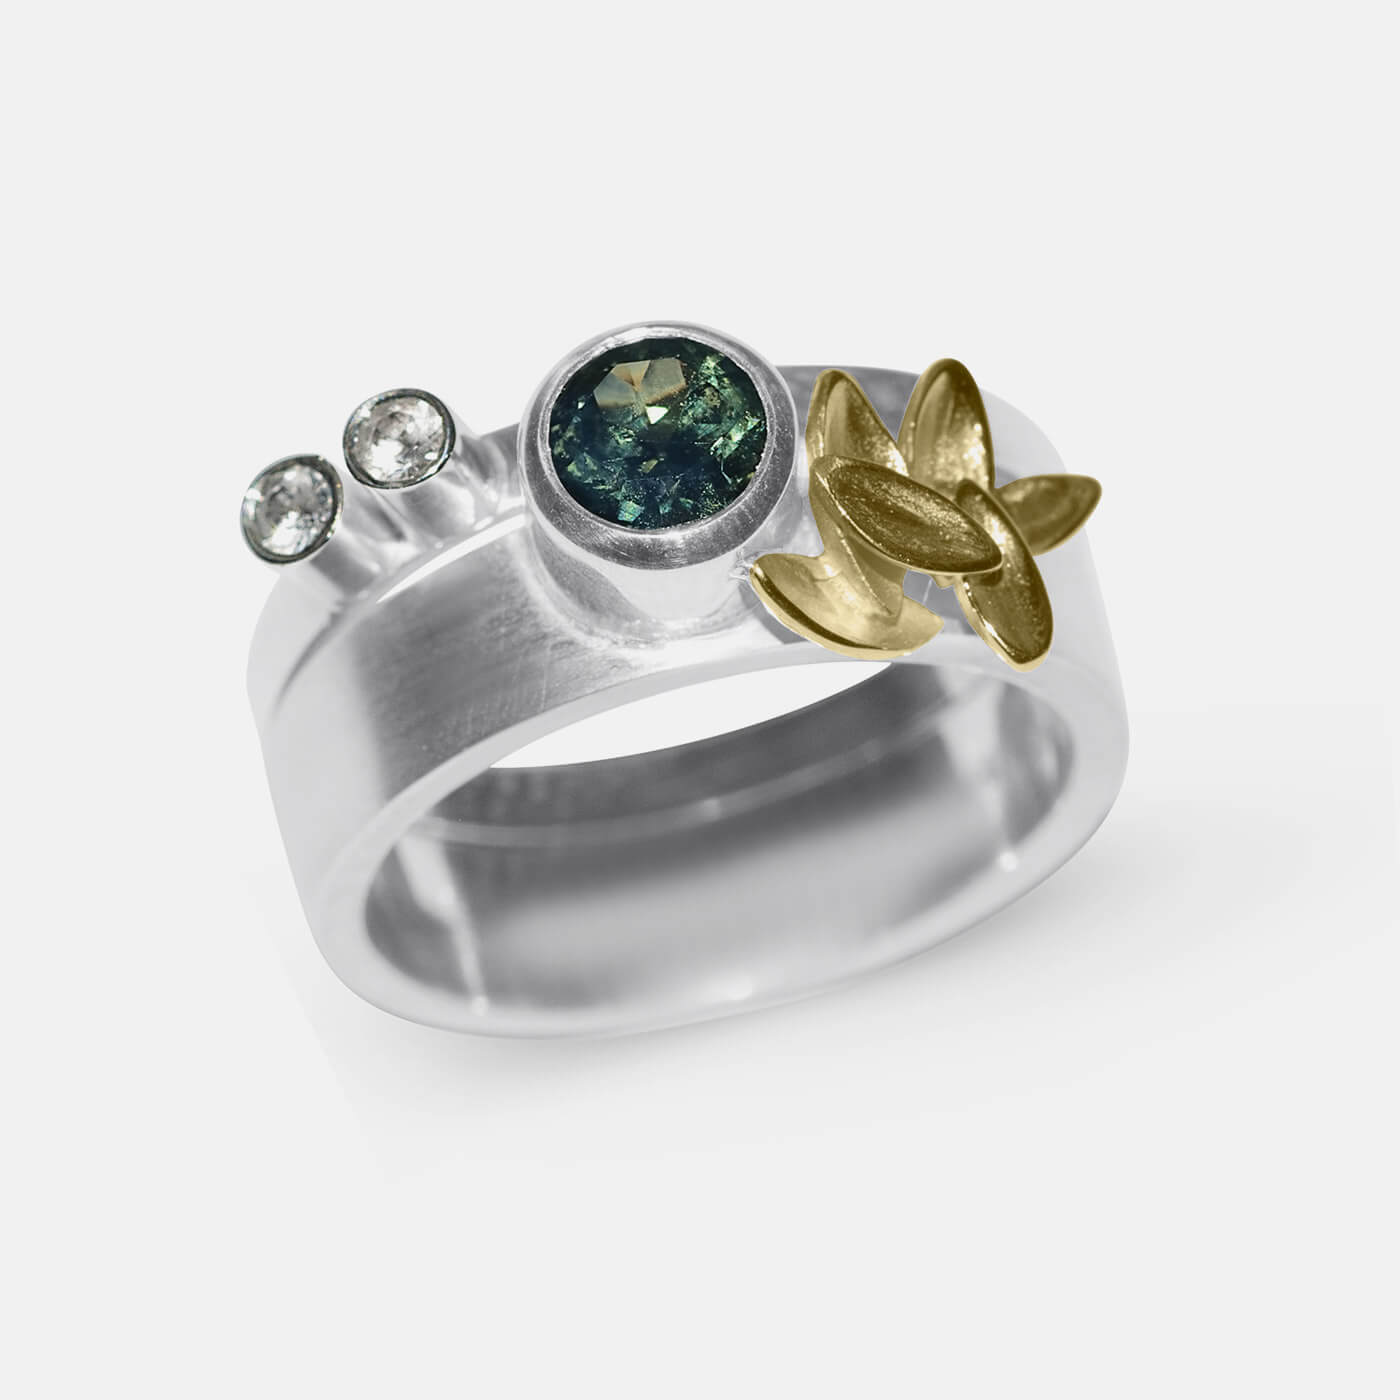 Foliage with Alexandrite Wedding Ring